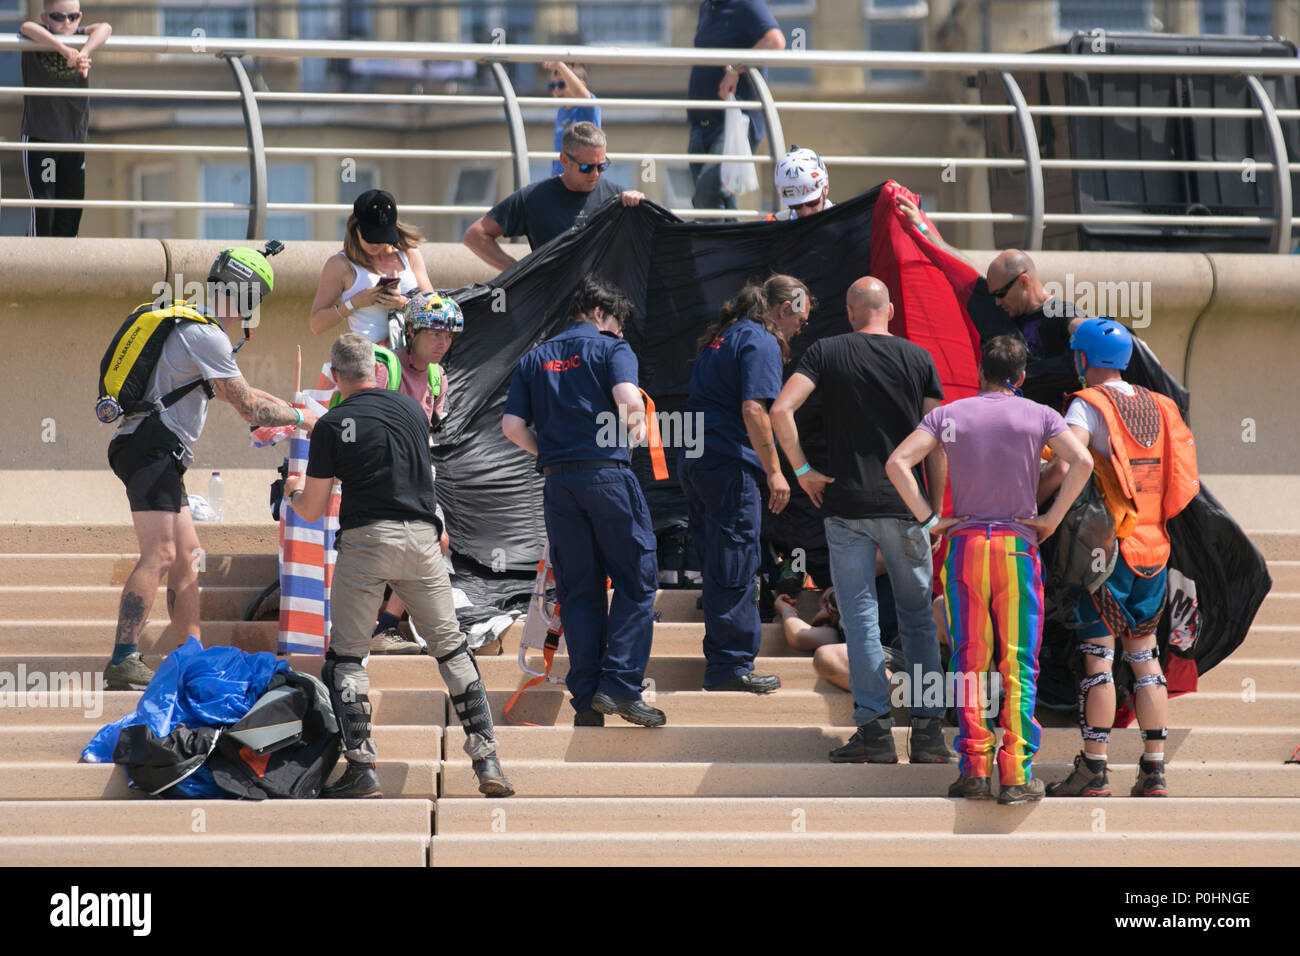 Blackpool, Lancashire, UK. 9 June 2018.  People rush to the aid of an injured base jumper who has crashed into the seaside promenade after a 400ft jump from a hired crane. A change in wind direction resulted in the canopy not fully opening which caused him to drift off course. Airgamez UK Base Jumping Championship event.  Credit:MediaWorldImages/AlamyLiveNews. Credit: MediaWorldImages/Alamy Live News - Stock Image